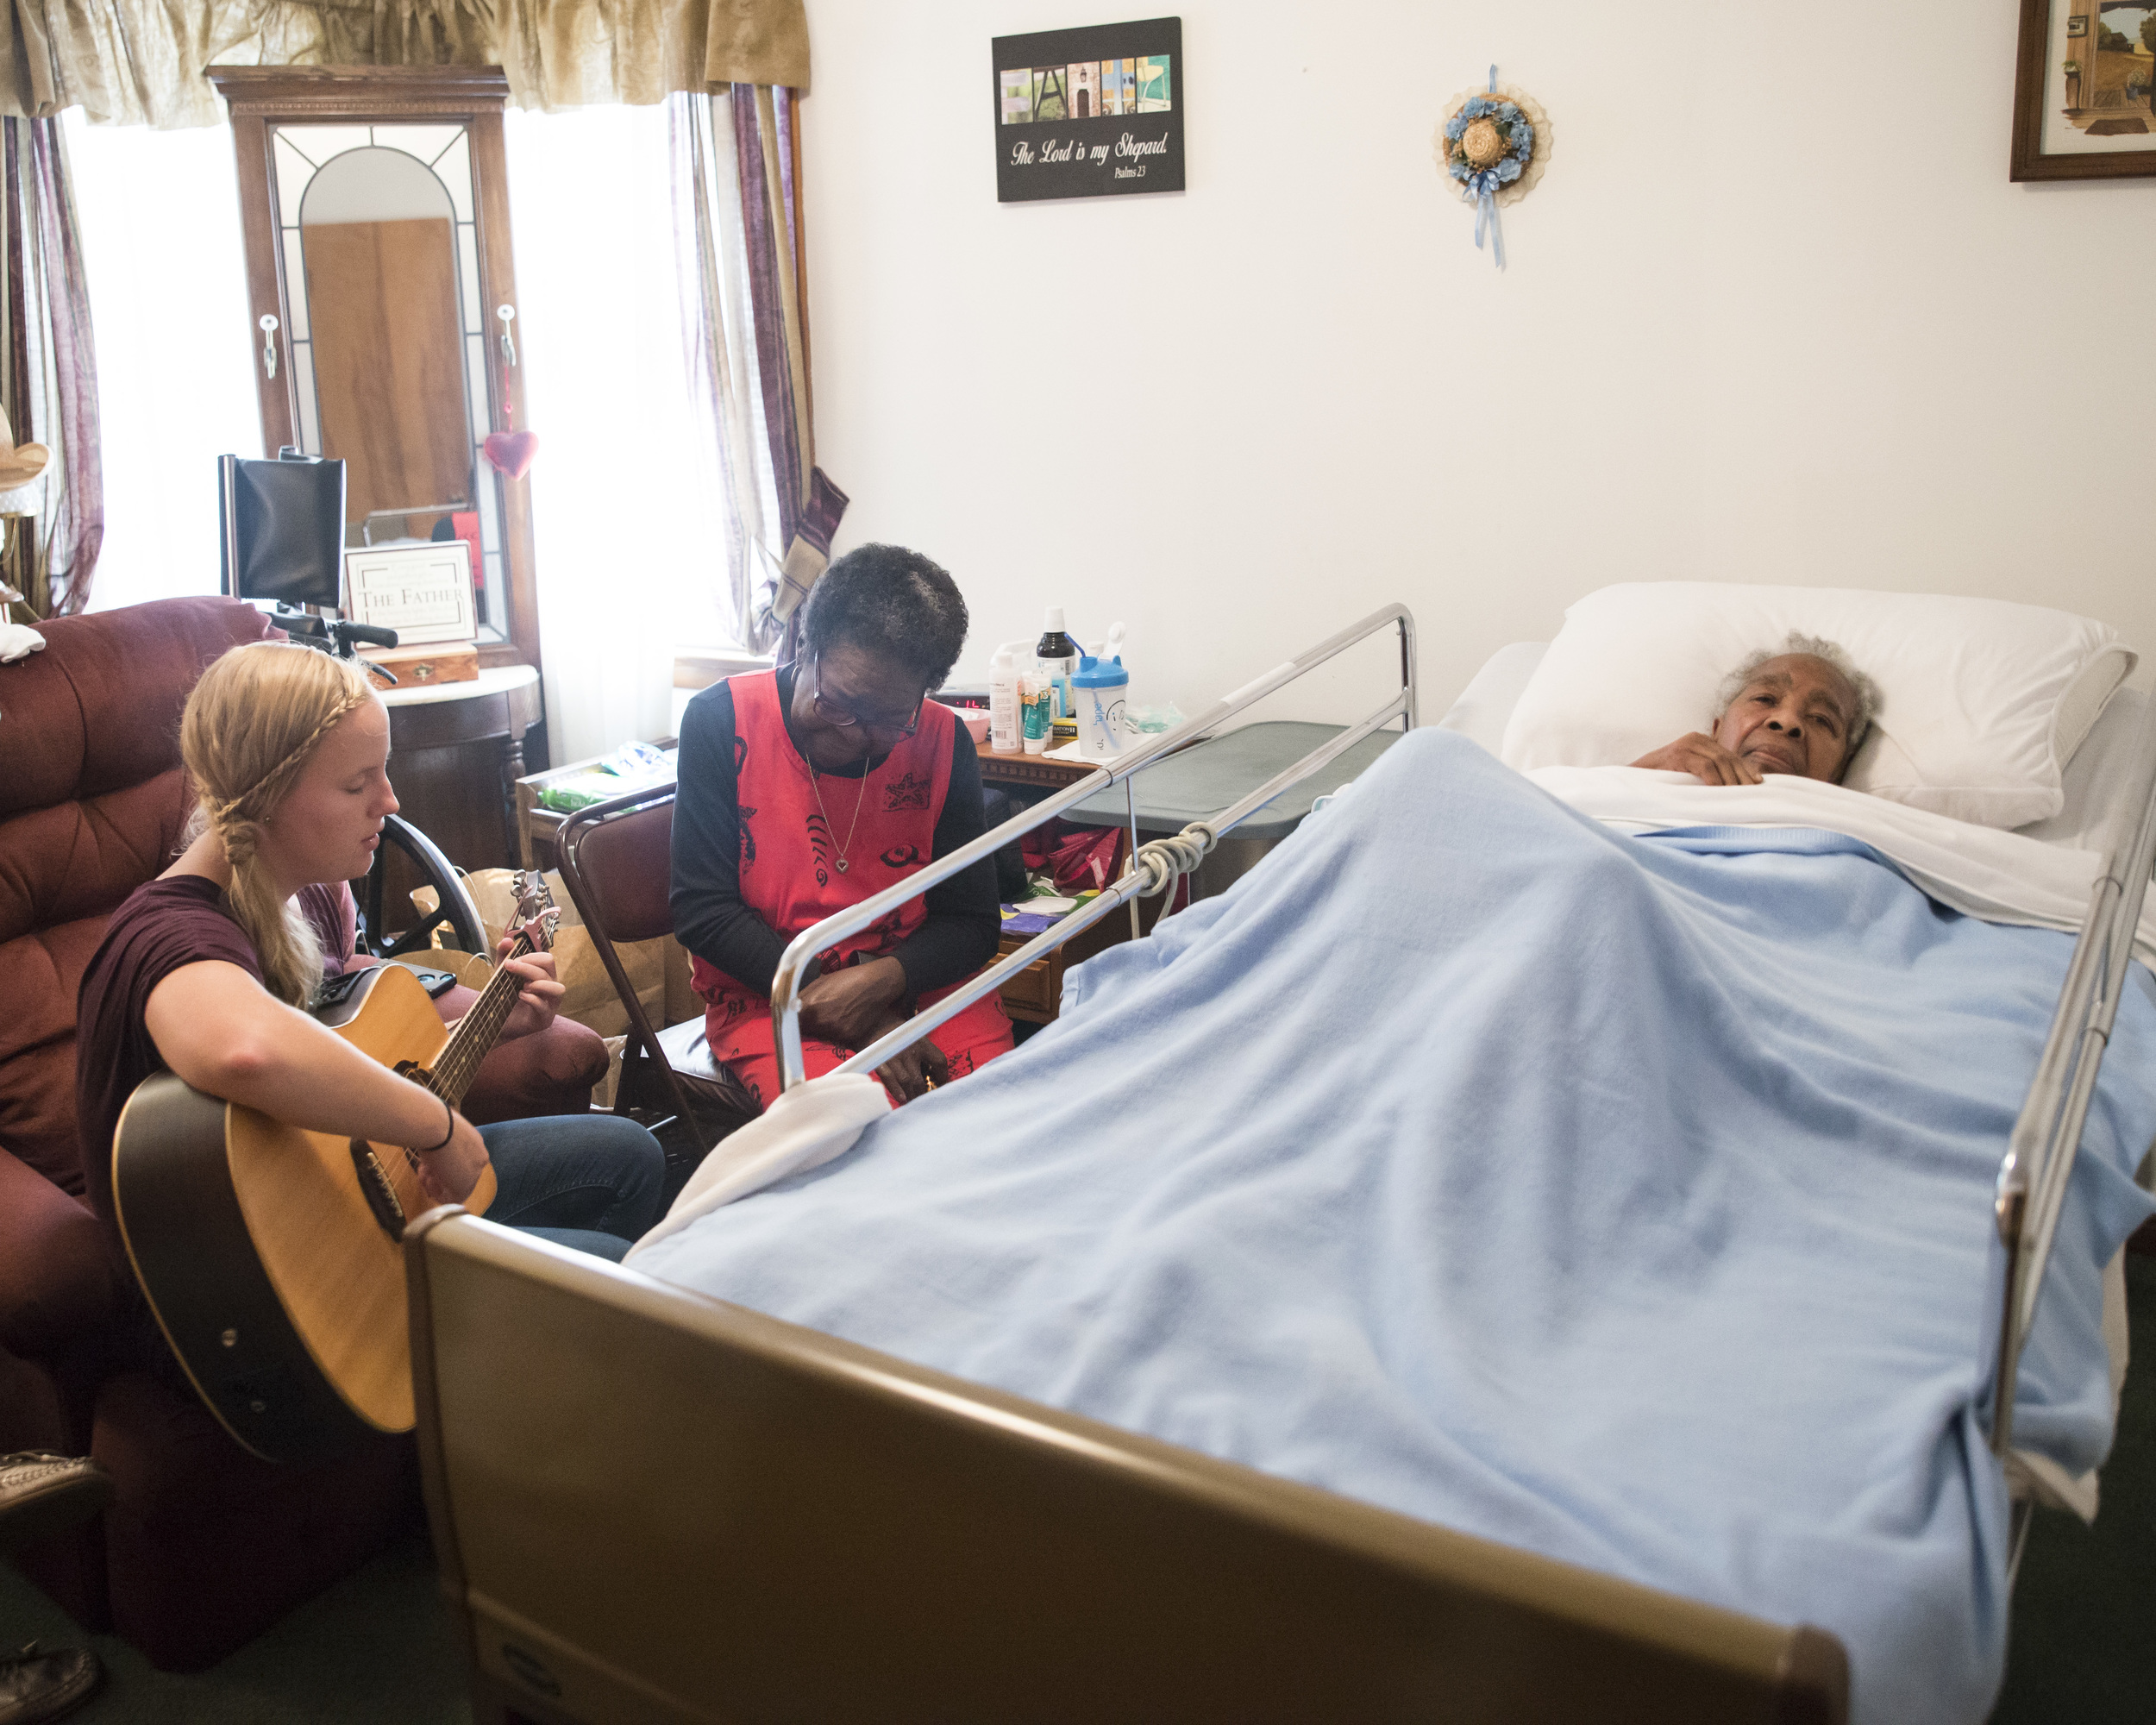 Visiting outside her scheduled volunteer hours, Anna plays her guitar for Mrs. Elizabeth who is comforted by the soft music and the presence of her new friend. All of this is happening in our neighborhood where people are choosing to be neighborly.